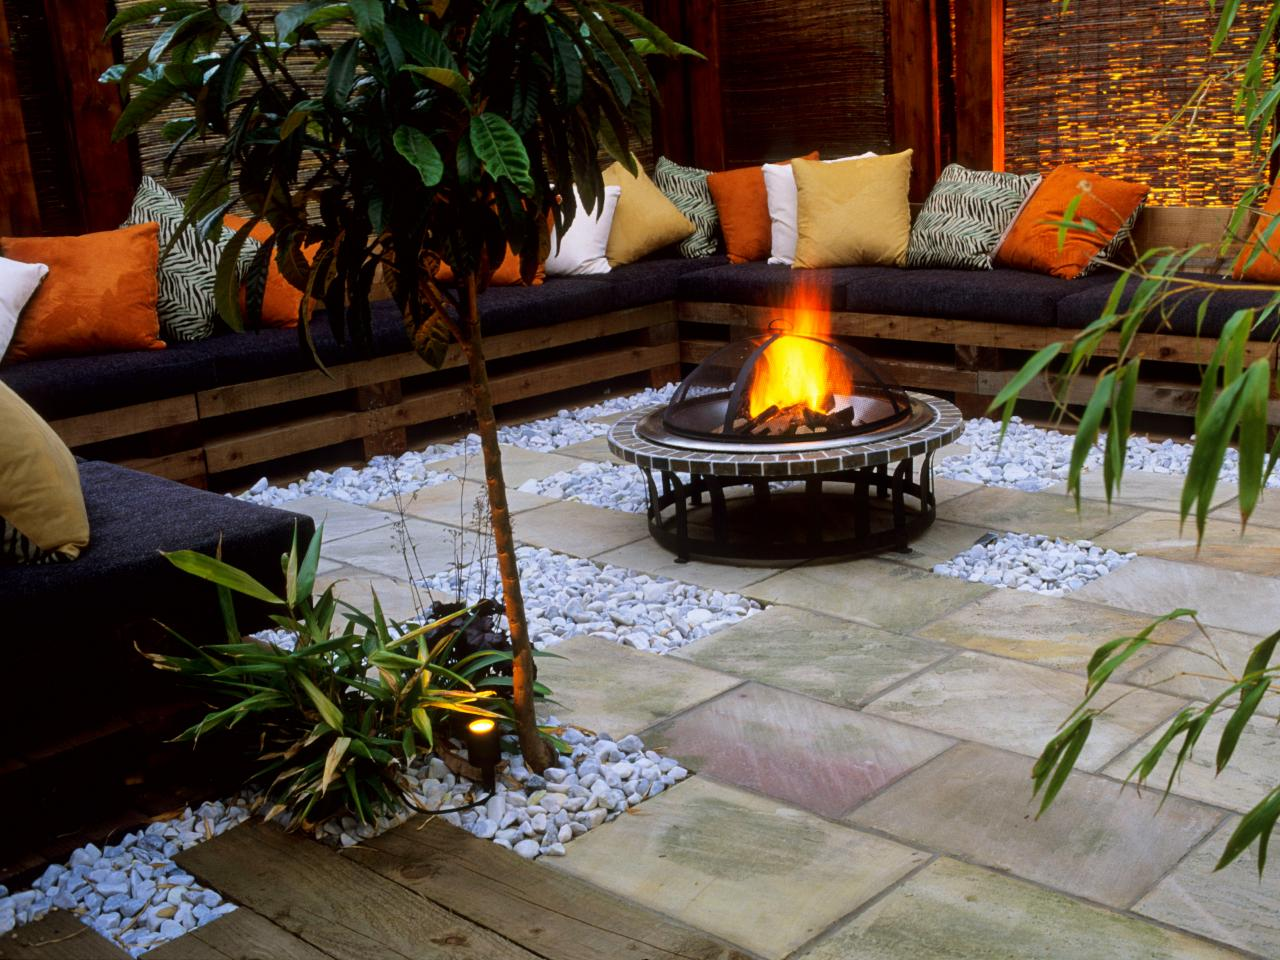 50 Best Outdoor Fire Pit Design Ideas for 2017 on Outdoor Fire Pit Ideas id=86887